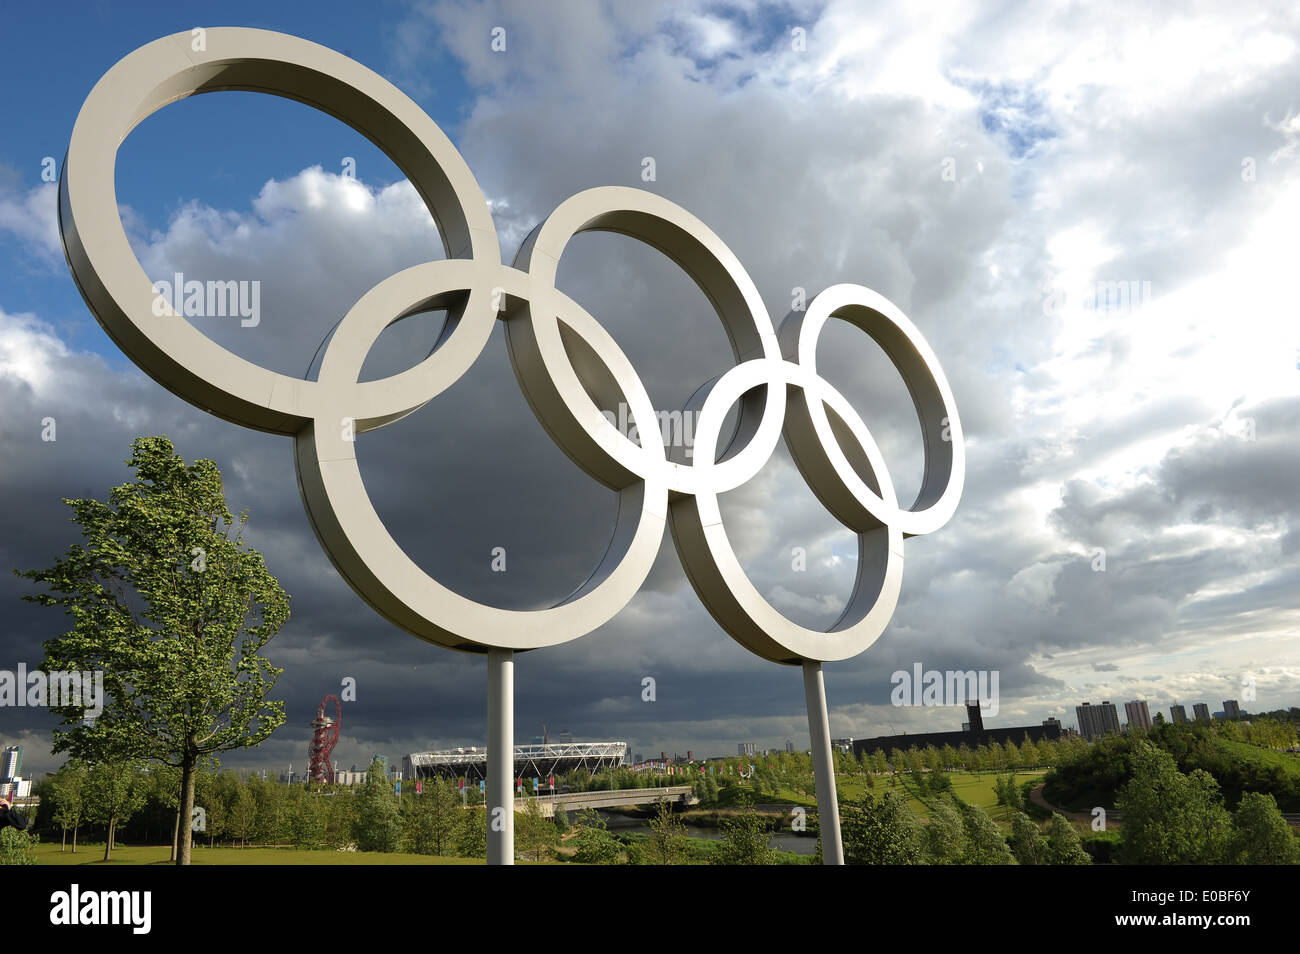 LONDON, ENGLAND - Wednesday 7 May 2014, a general view of the Olympic Rings inside the Queen Elizabeth Olympic Park in Stratford - Stock Image